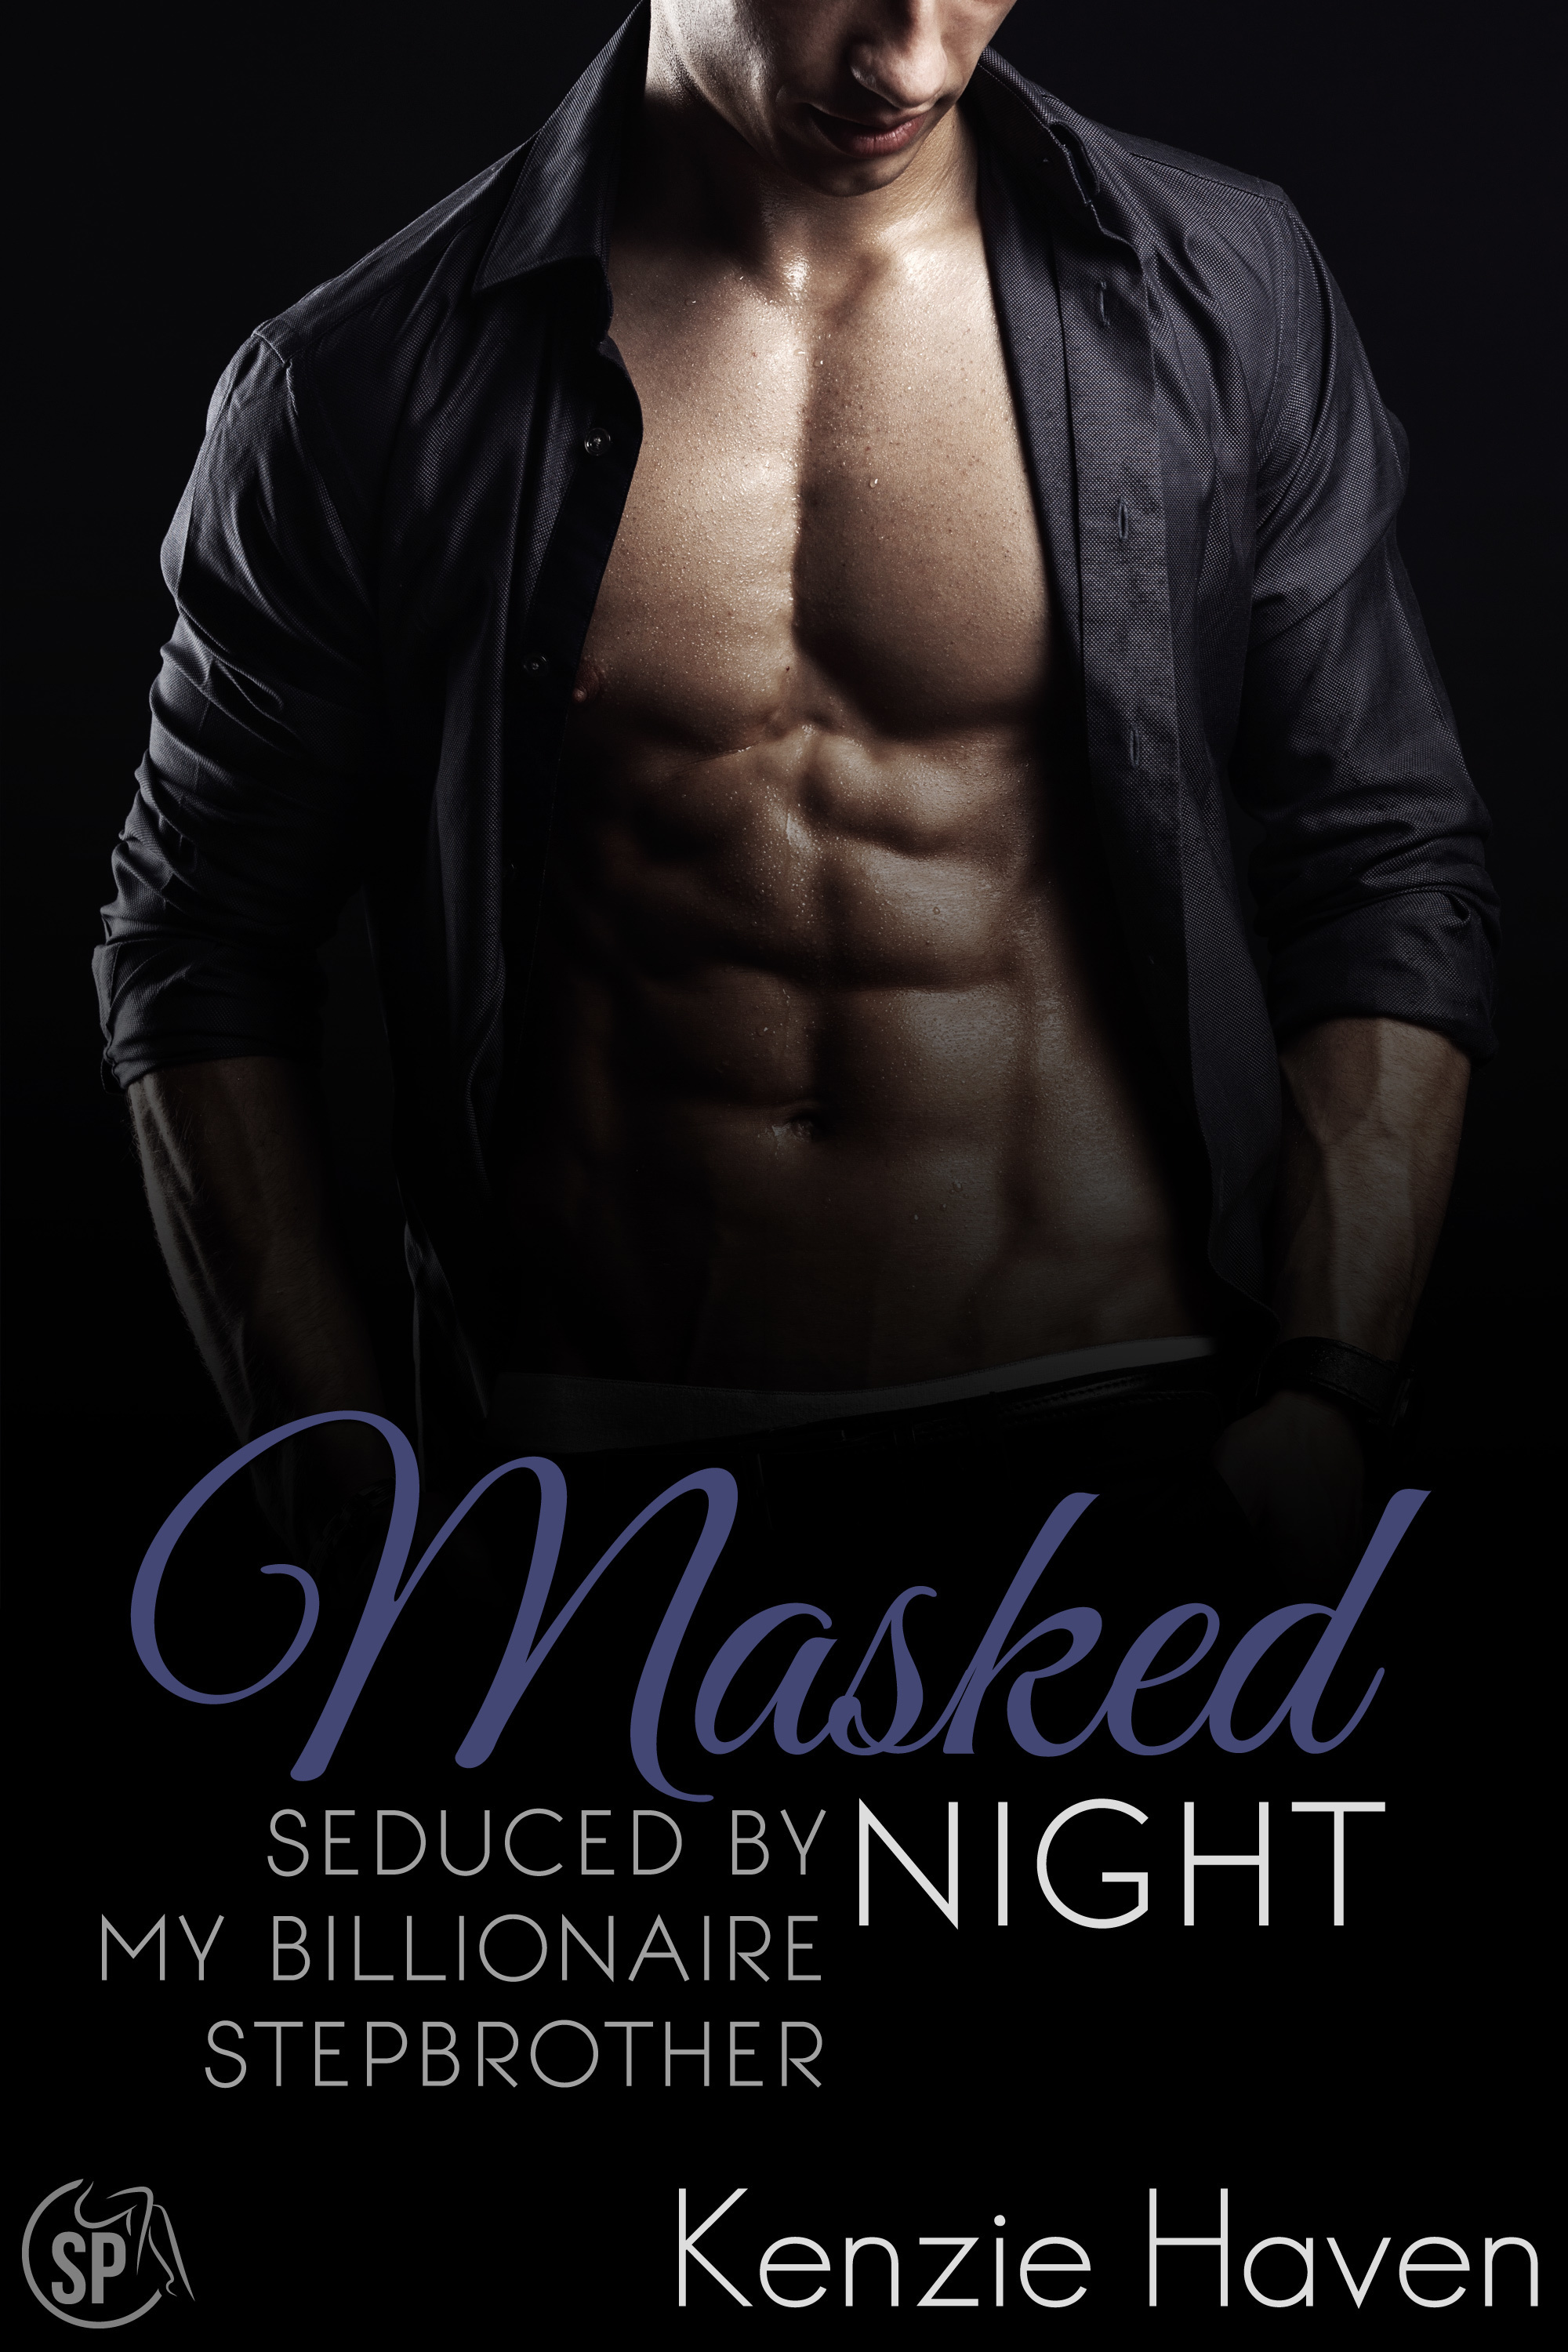 Masked Night: Seduced my Billionaire Stepbrother by Kenzie Haven